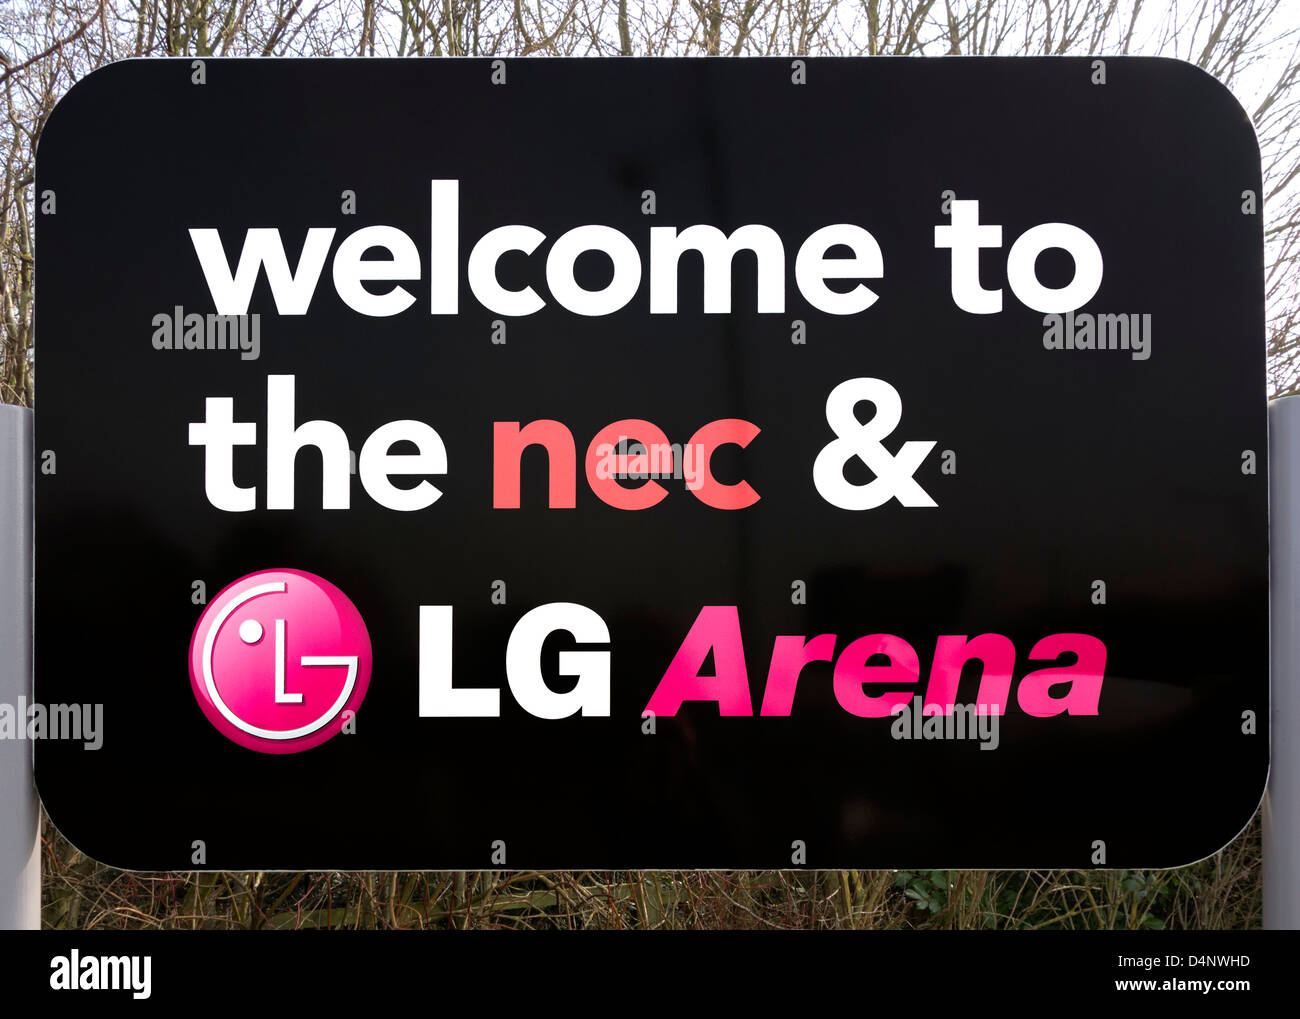 Sign at the entrance to the NEC (National Exhibition Centre) and LG Arena, Birmingham, West Midlands, UK - Stock Image